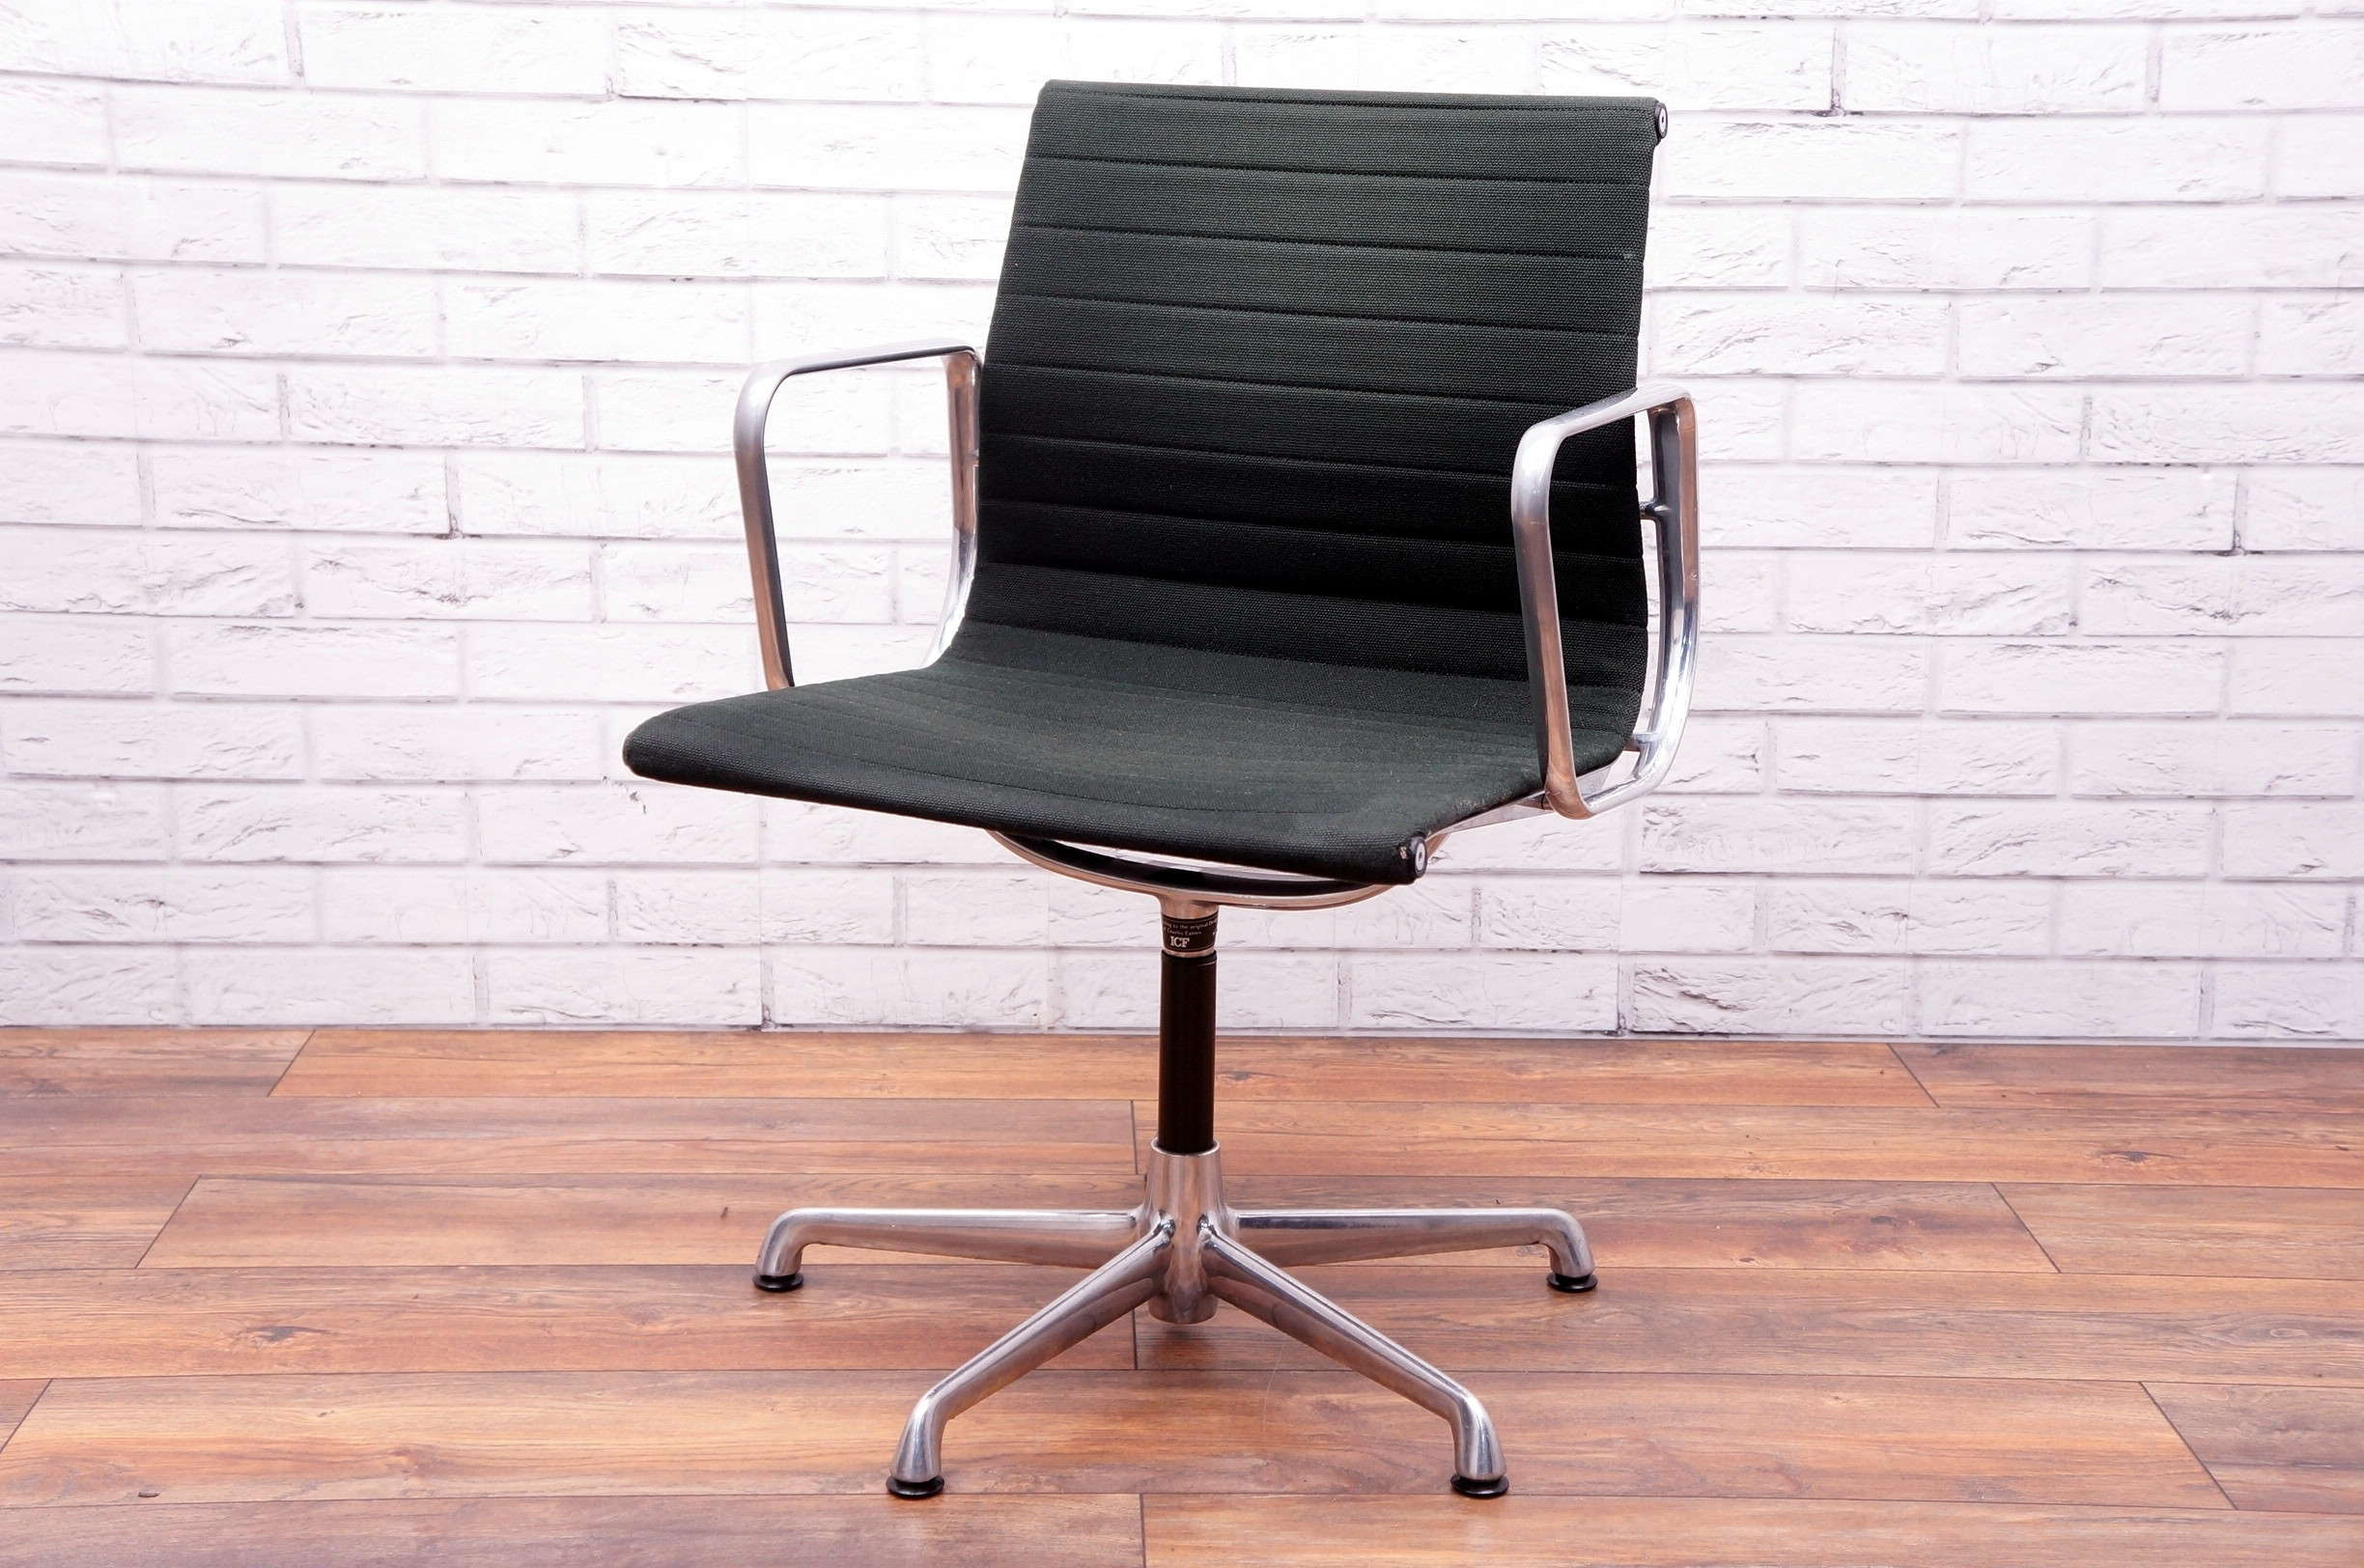 Eanes Chair Icf Charles Eames Ea 108 Chair